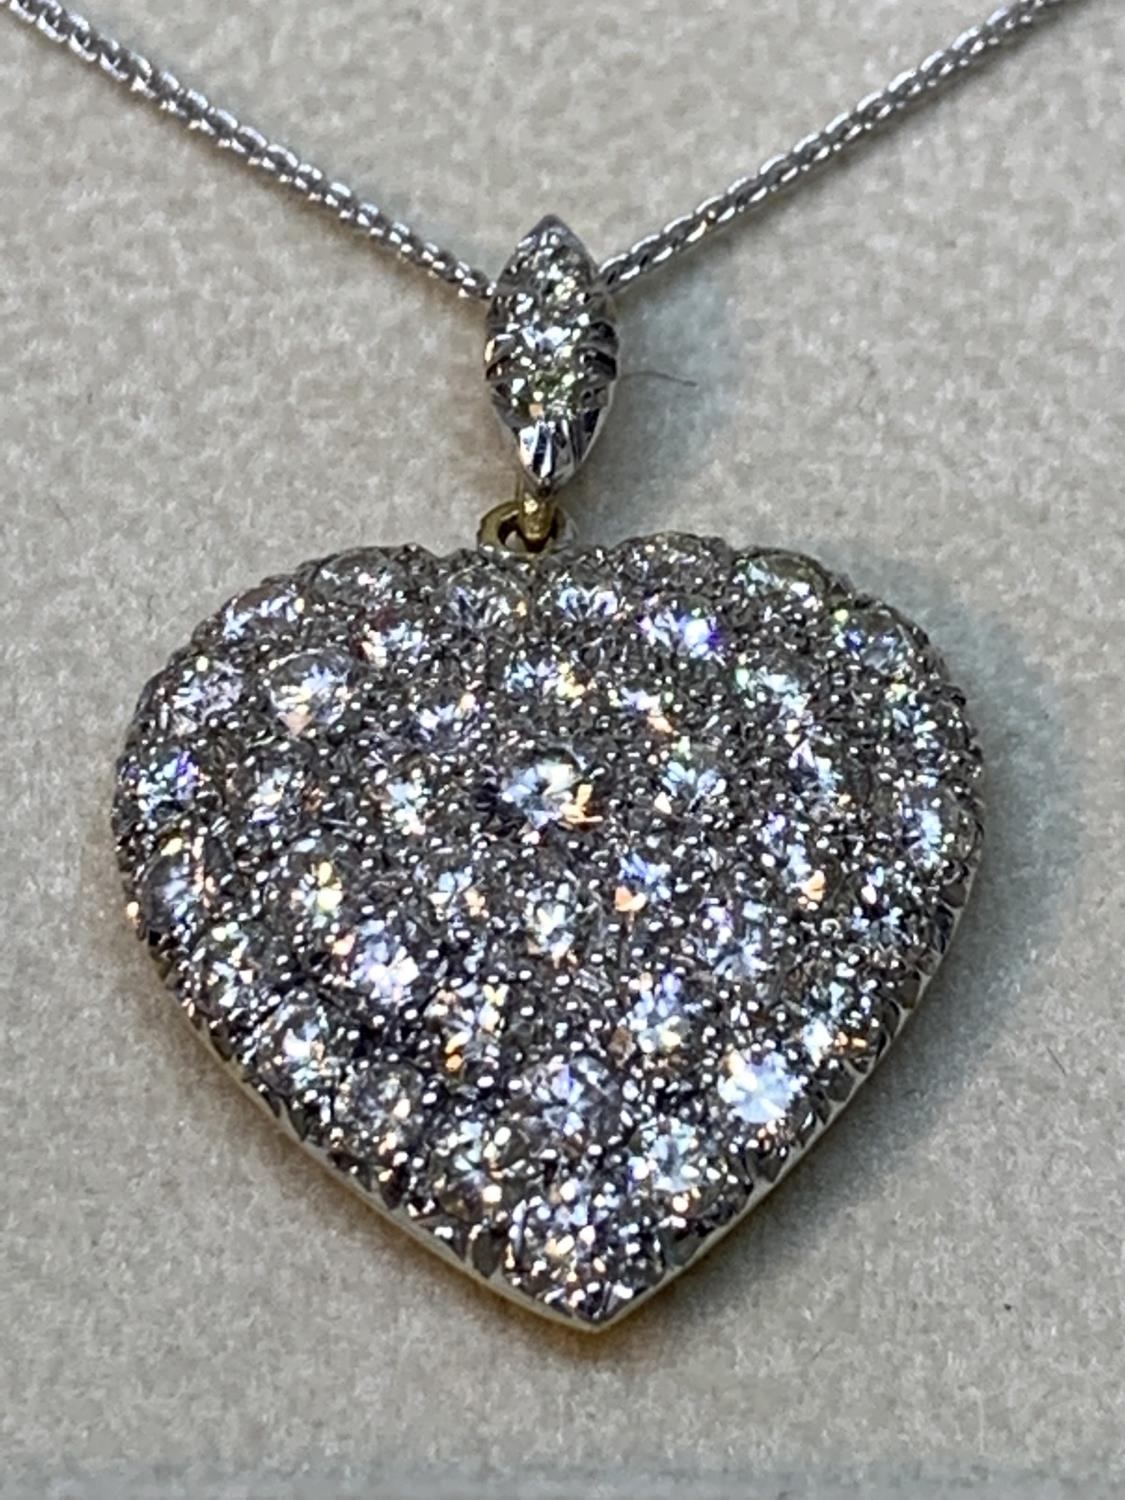 A 15 CARAT WHITE AND YELLOW GOLD LARGE DIAMOND ENCRUSTED HEART PENDANT WITH CHAIN LENGTH 44CM IN A - Image 3 of 8